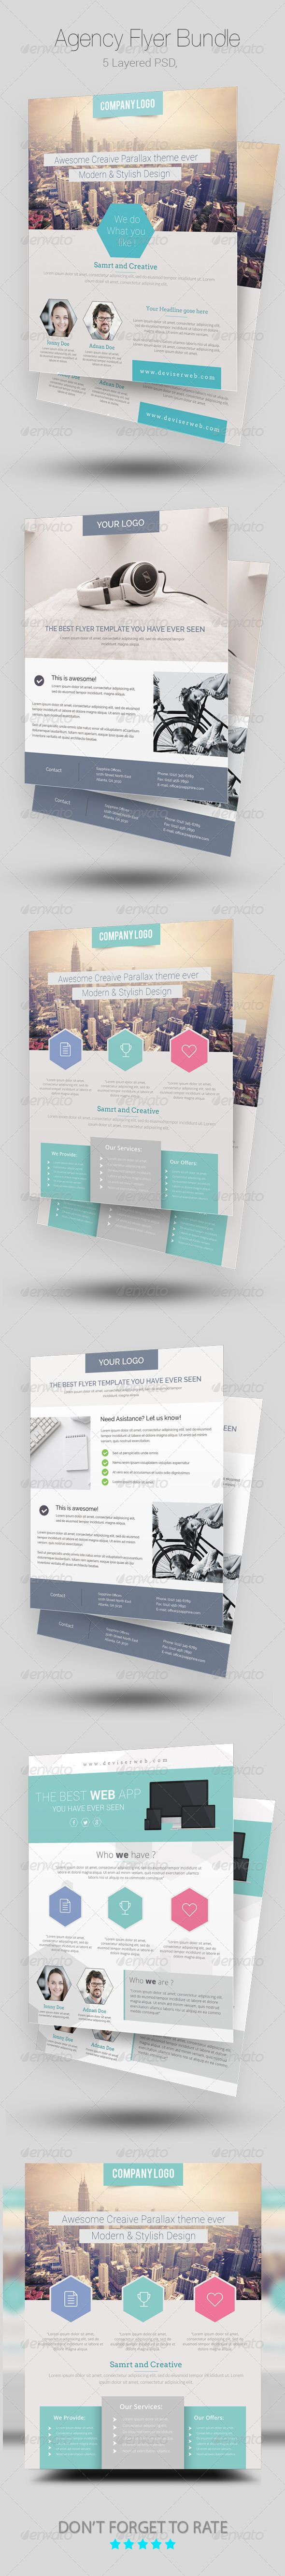 26 best Flyer Templates images on Pinterest | Flyer template, Flyer ...